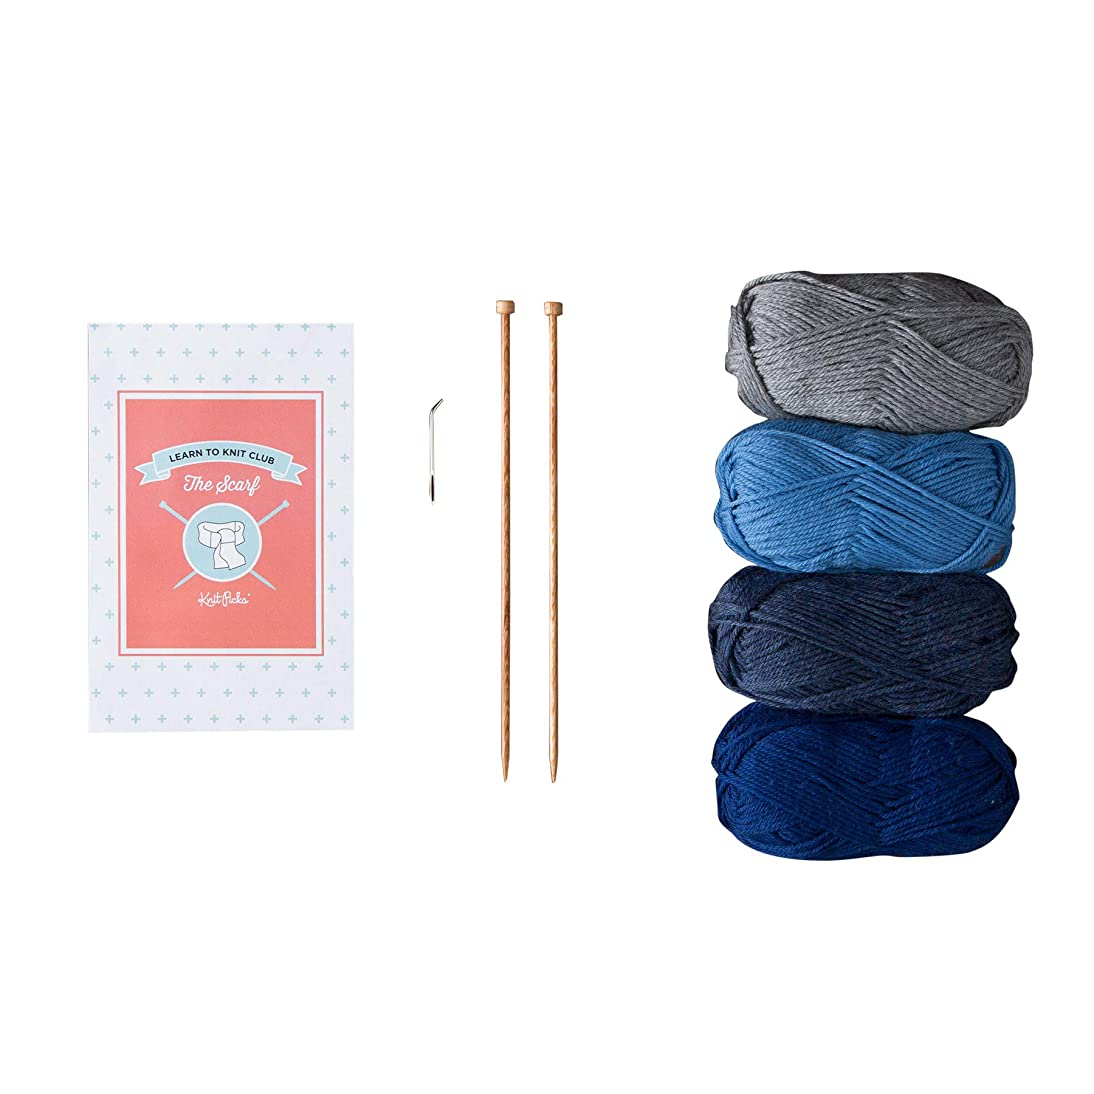 Knit Picks Learn to Knit Club: The Scarf - Beginner Knitting Kit (Blue)